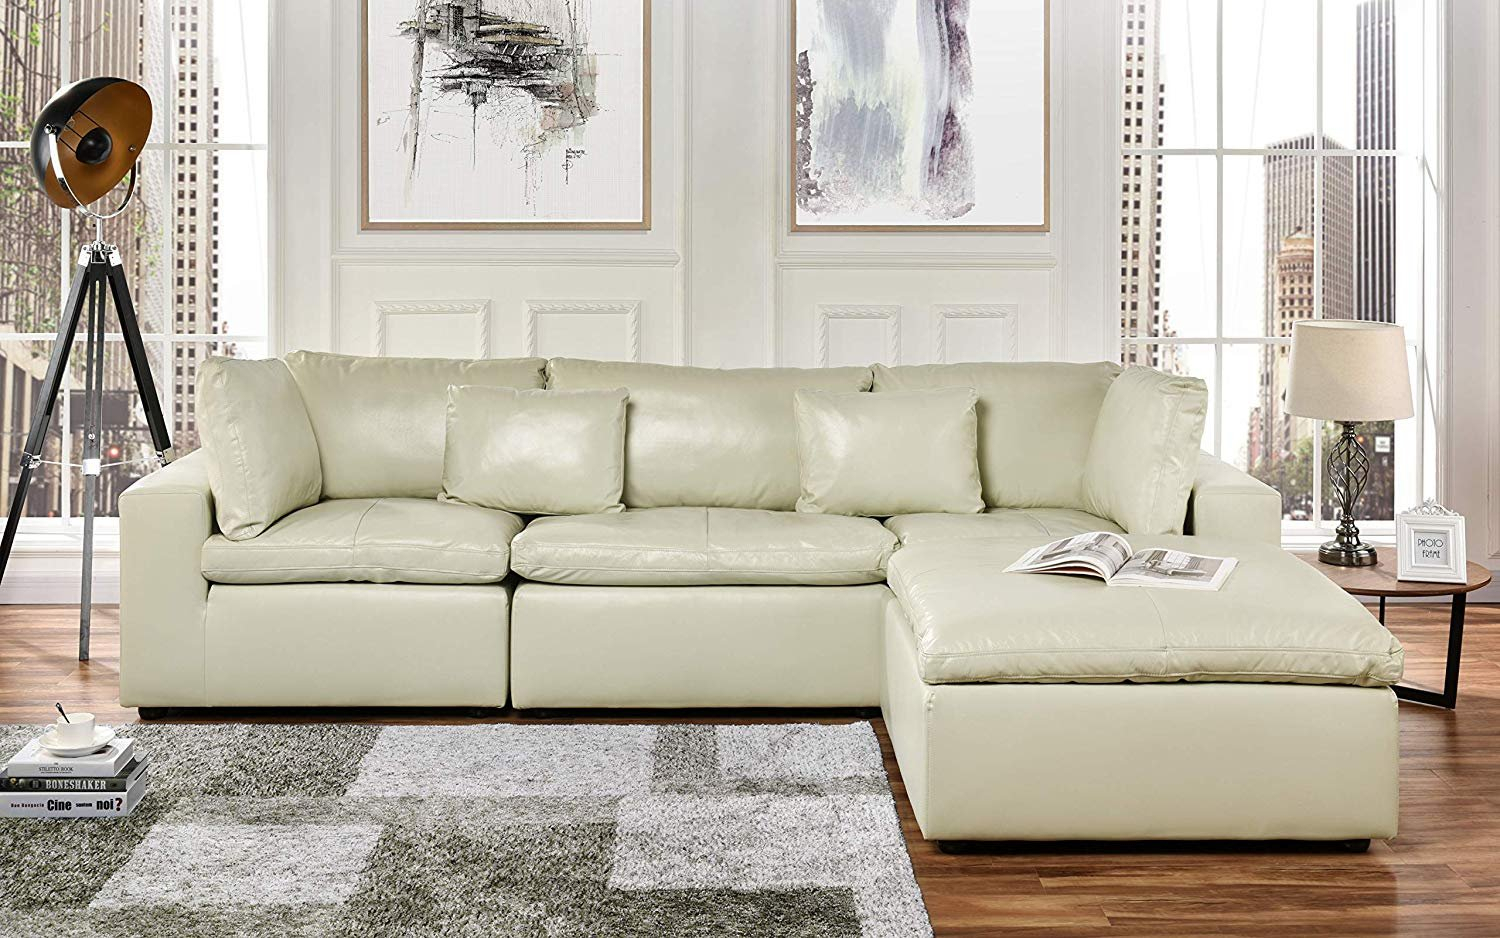 Large Leather Sectional Sofa, L Shape Couch With Wide Inside Oversized Sectional Sofas (View 1 of 15)